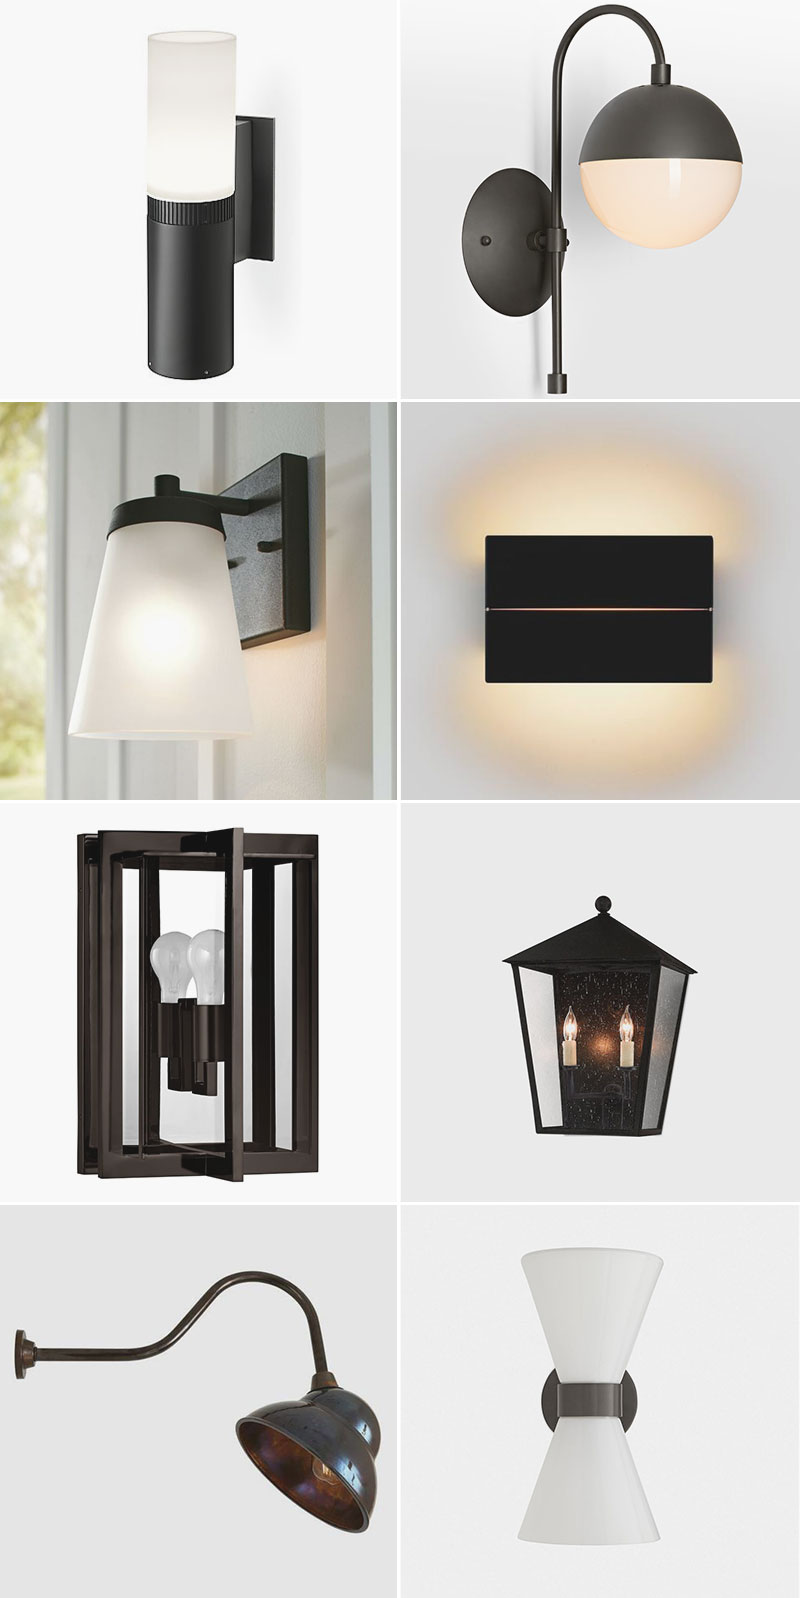 Illuminate Your Patio With These Chic Black Outdoor Sconces! 24 sources for outdoor lighting for the deck, patio, front porch, or back door!